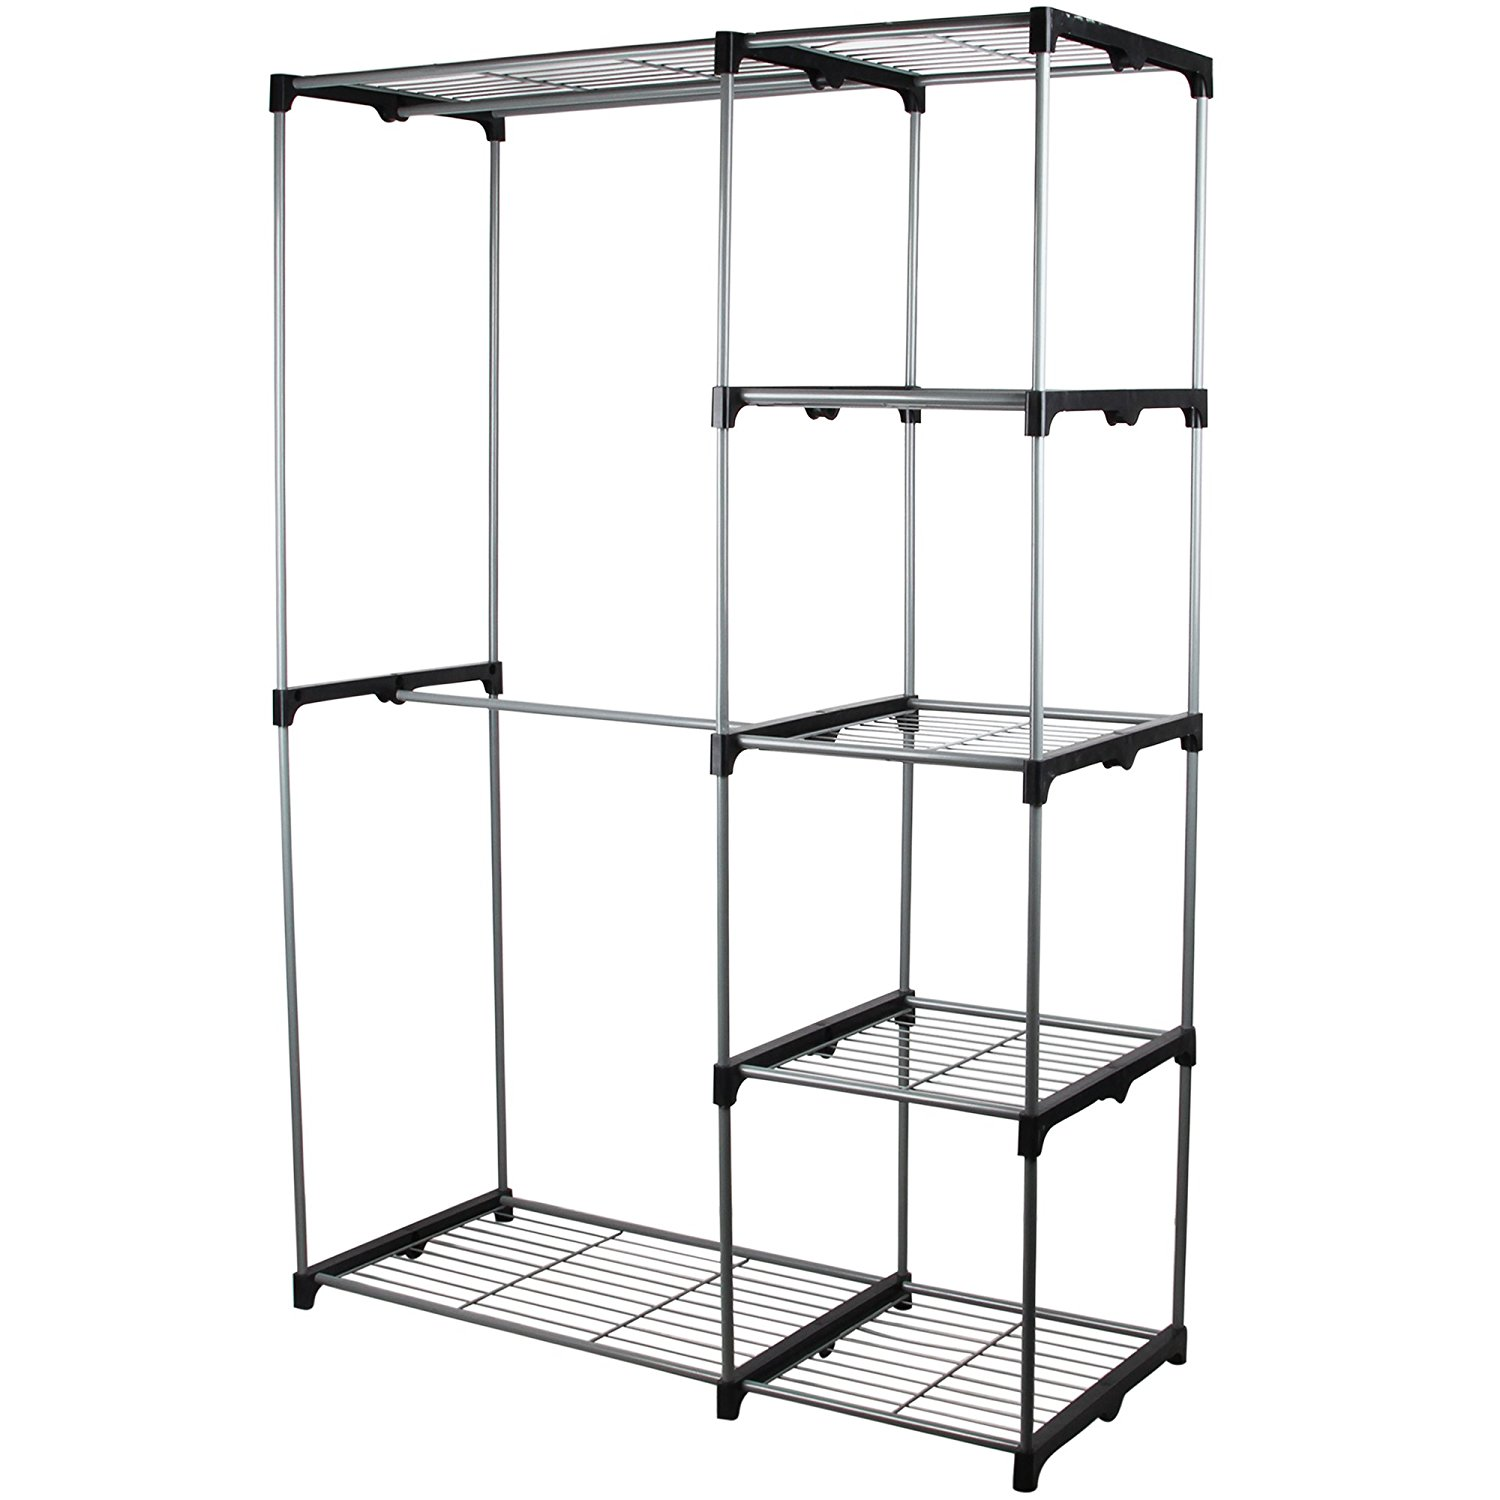 Superbe Double Rod Portable Clothes Storage Rack Freestanding Closet Wardrobe With  Steel And Plastic Frame CL68 0